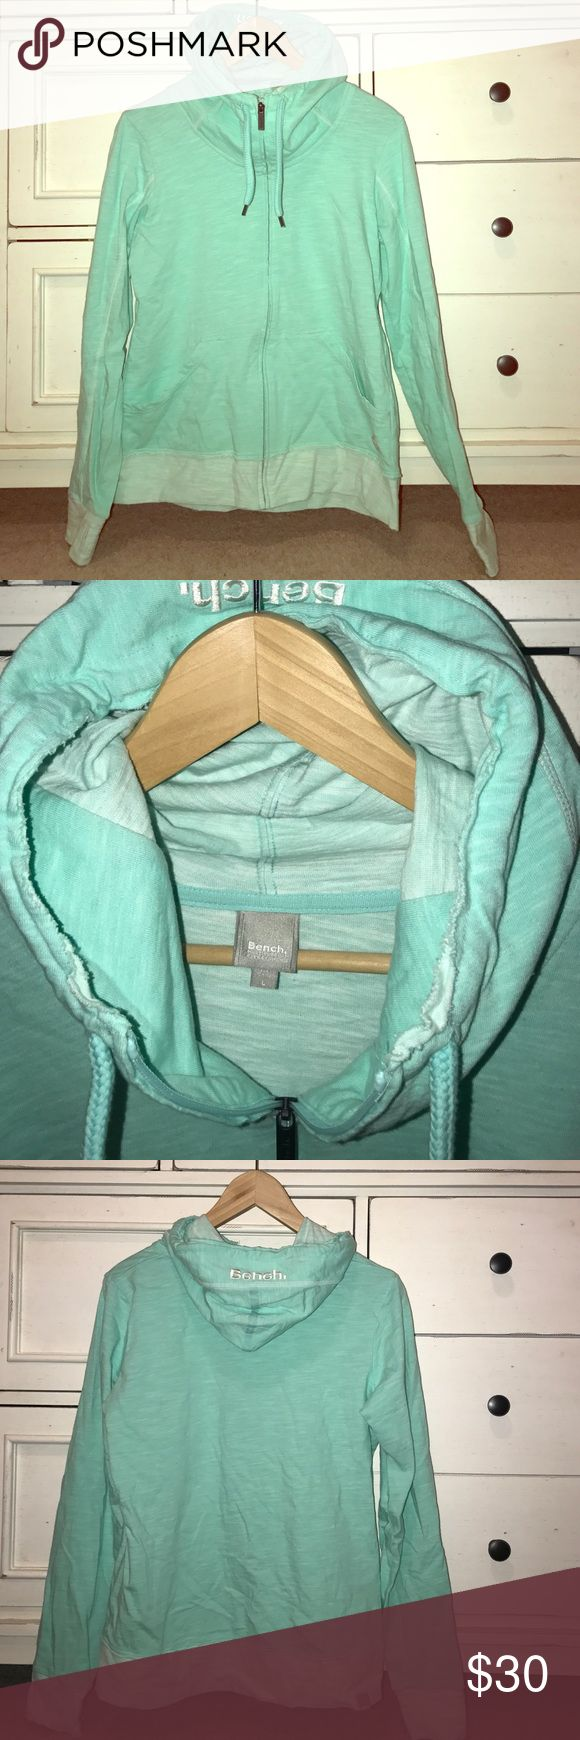 """NWOT womens large bench hoodie in teal Gorgeous (despite the wrinkles) large bench hoodie in teal. Has an awesome zip up that keeps your neck warm. Bought it and took the tags off and decided the color just wasn't for me! Shoulder 17-18"""" bust 21"""" length 25"""" stretchy material. Bench Tops Sweatshirts & Hoodies"""